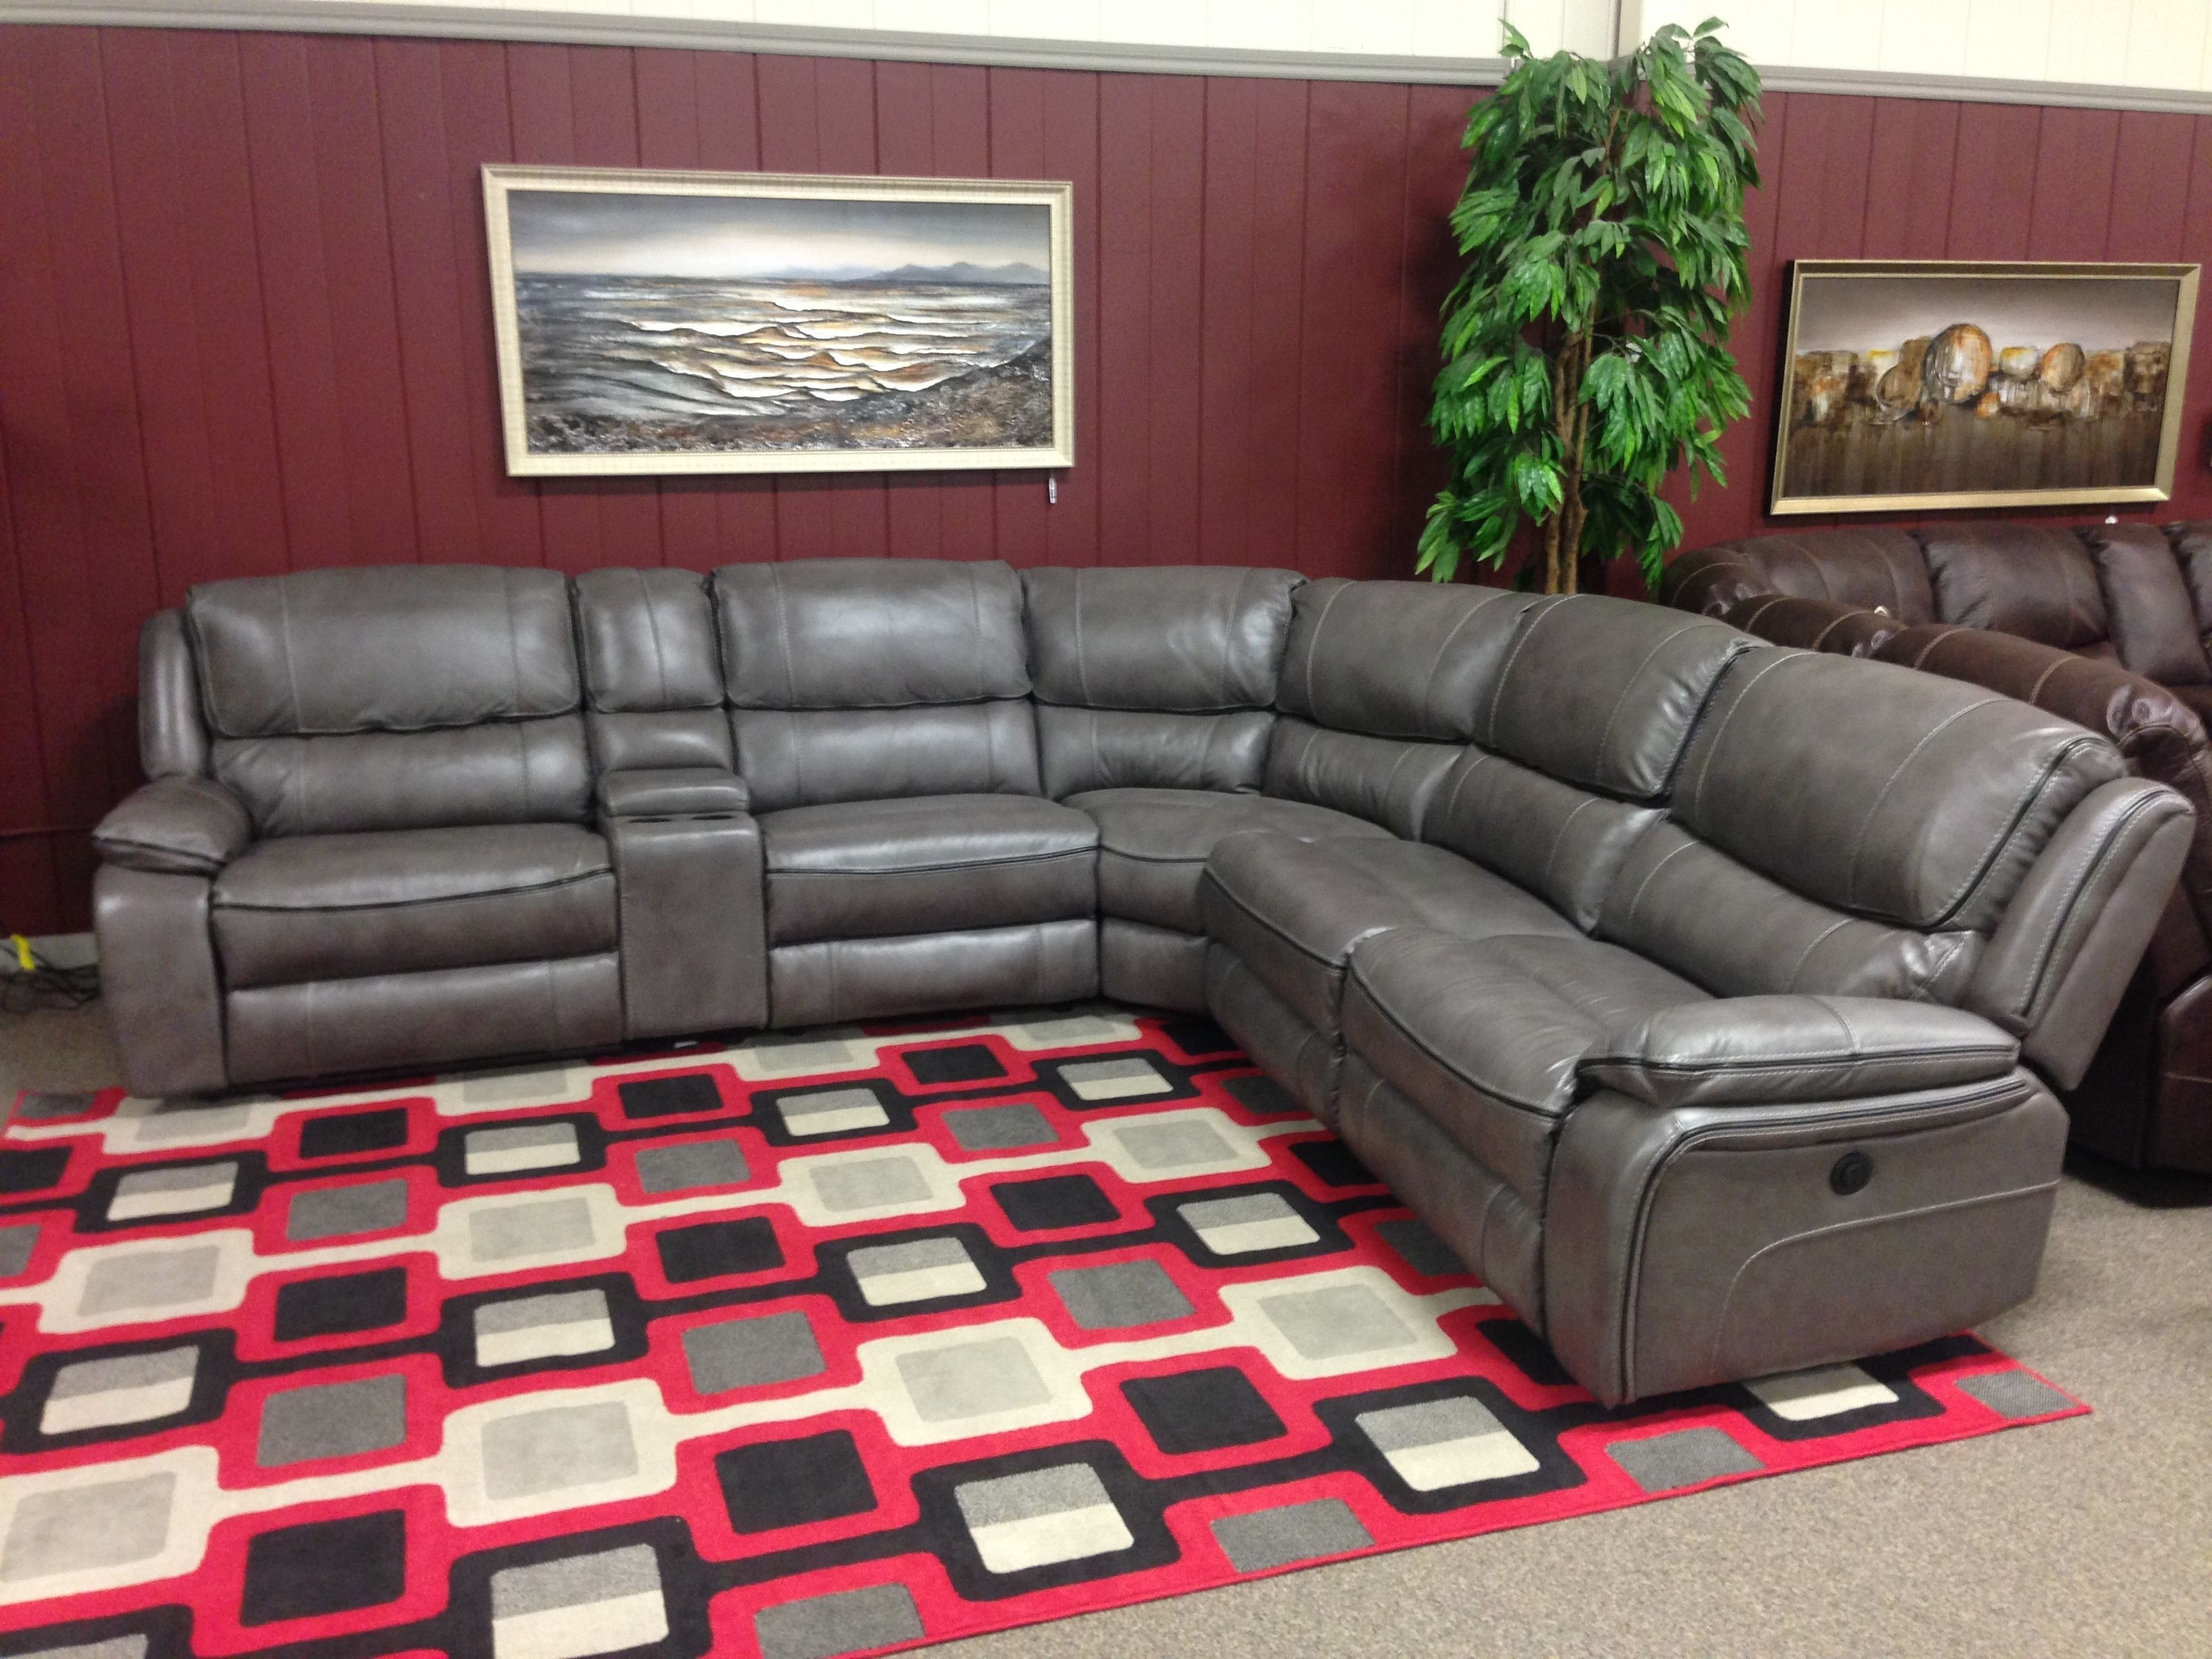 Grey Leather Reclining Sectional Travis Dk 6 Piece Power W Pwr Hdrst Pertaining To Clyde Grey Leather 3 Piece Power Reclining Sectionals With Pwr Hdrst & Usb (View 17 of 25)